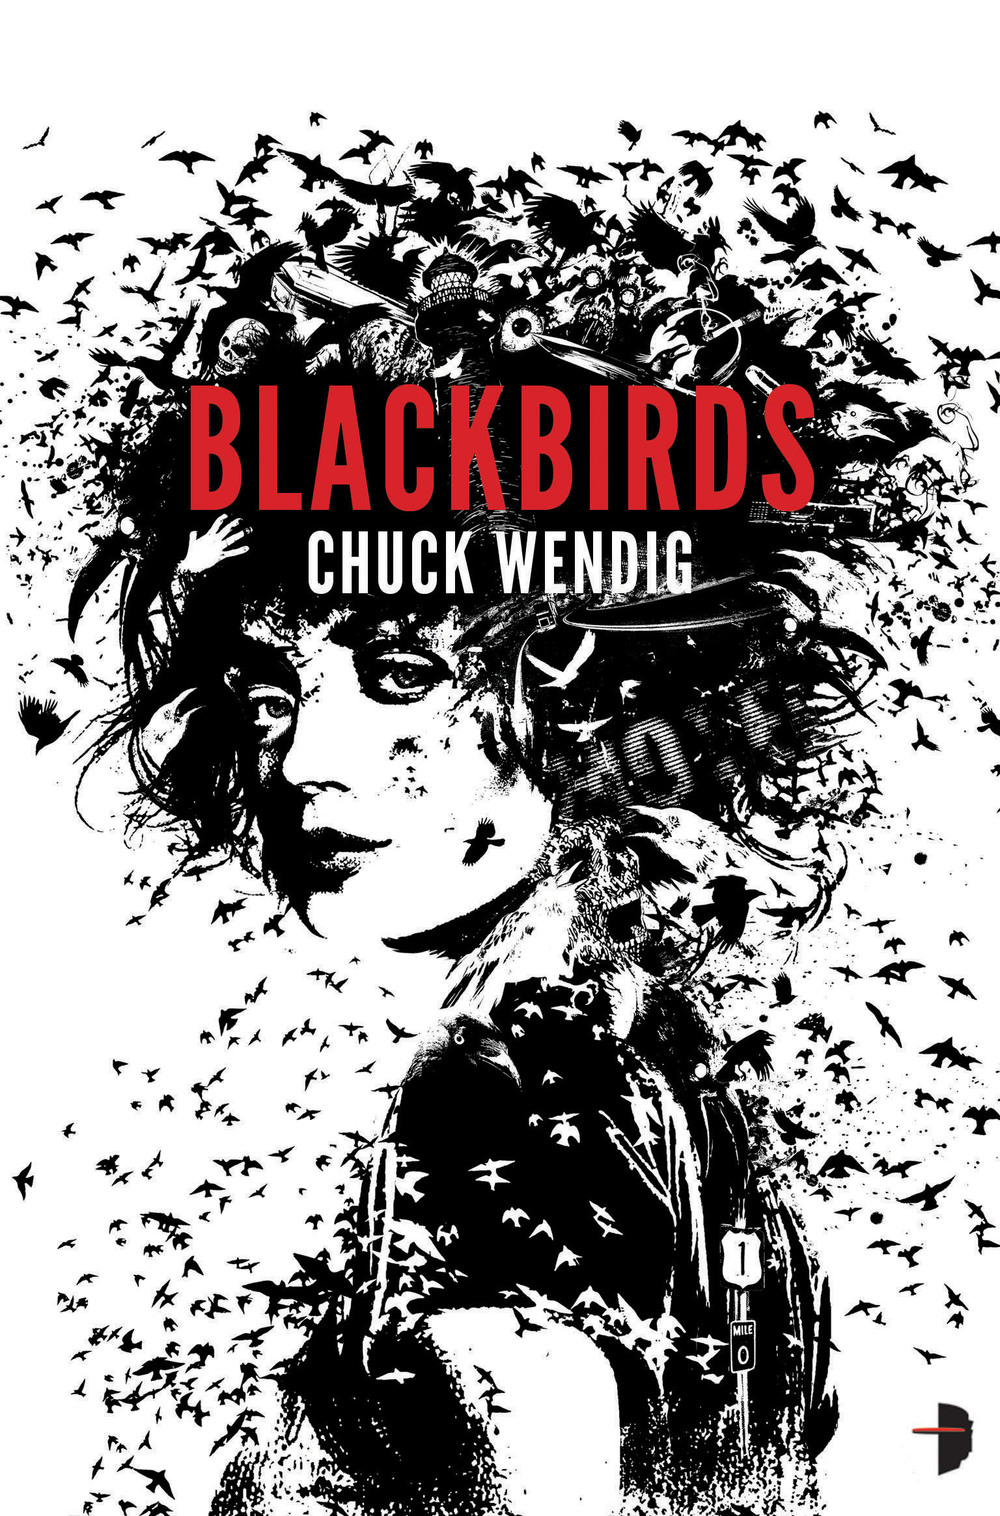 Blackbirds Chuck Wendig cover